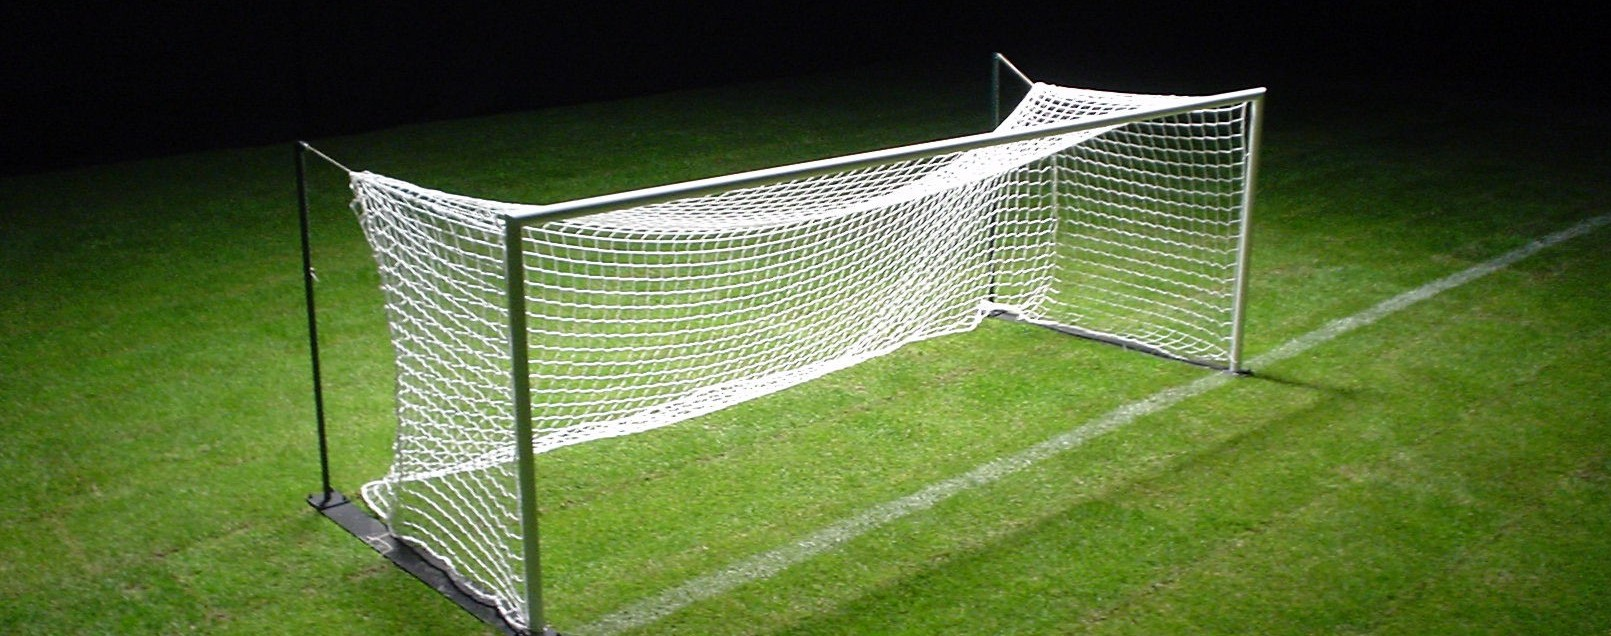 Soccer Goal Nets Football Goal Net Sports Netting Pictures to pin on ...